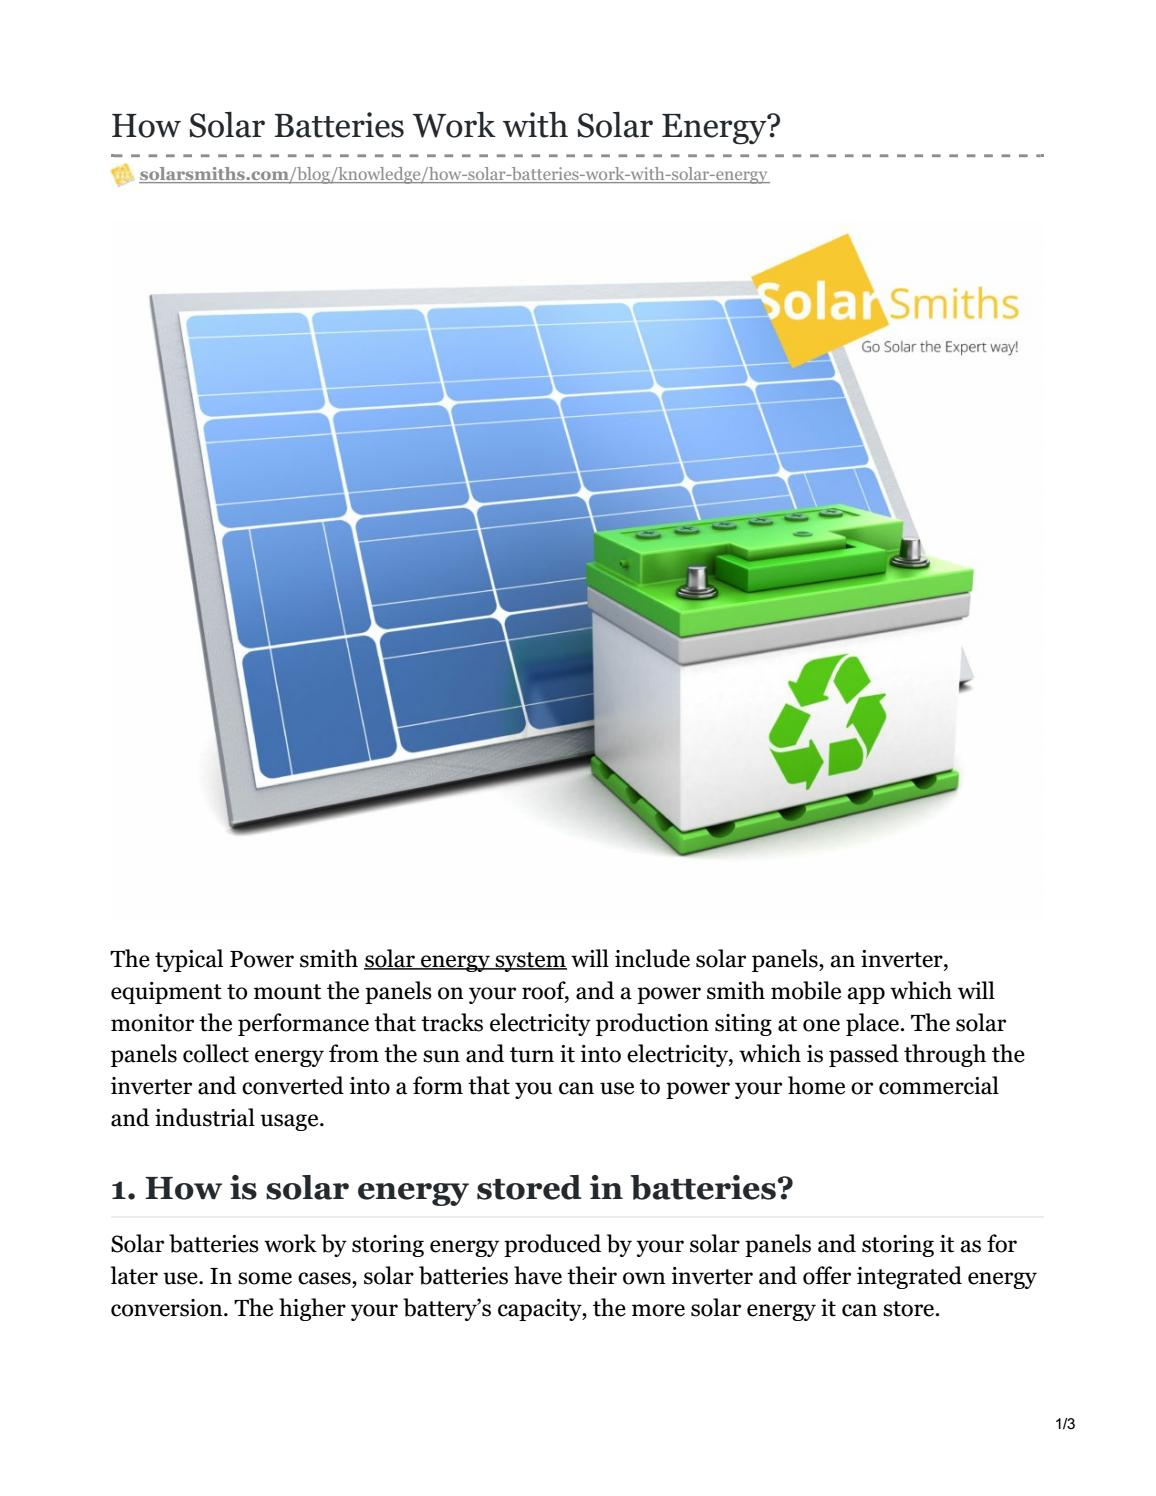 How Solar Batteries Work With Solar Energy By Solarsmiths Issuu